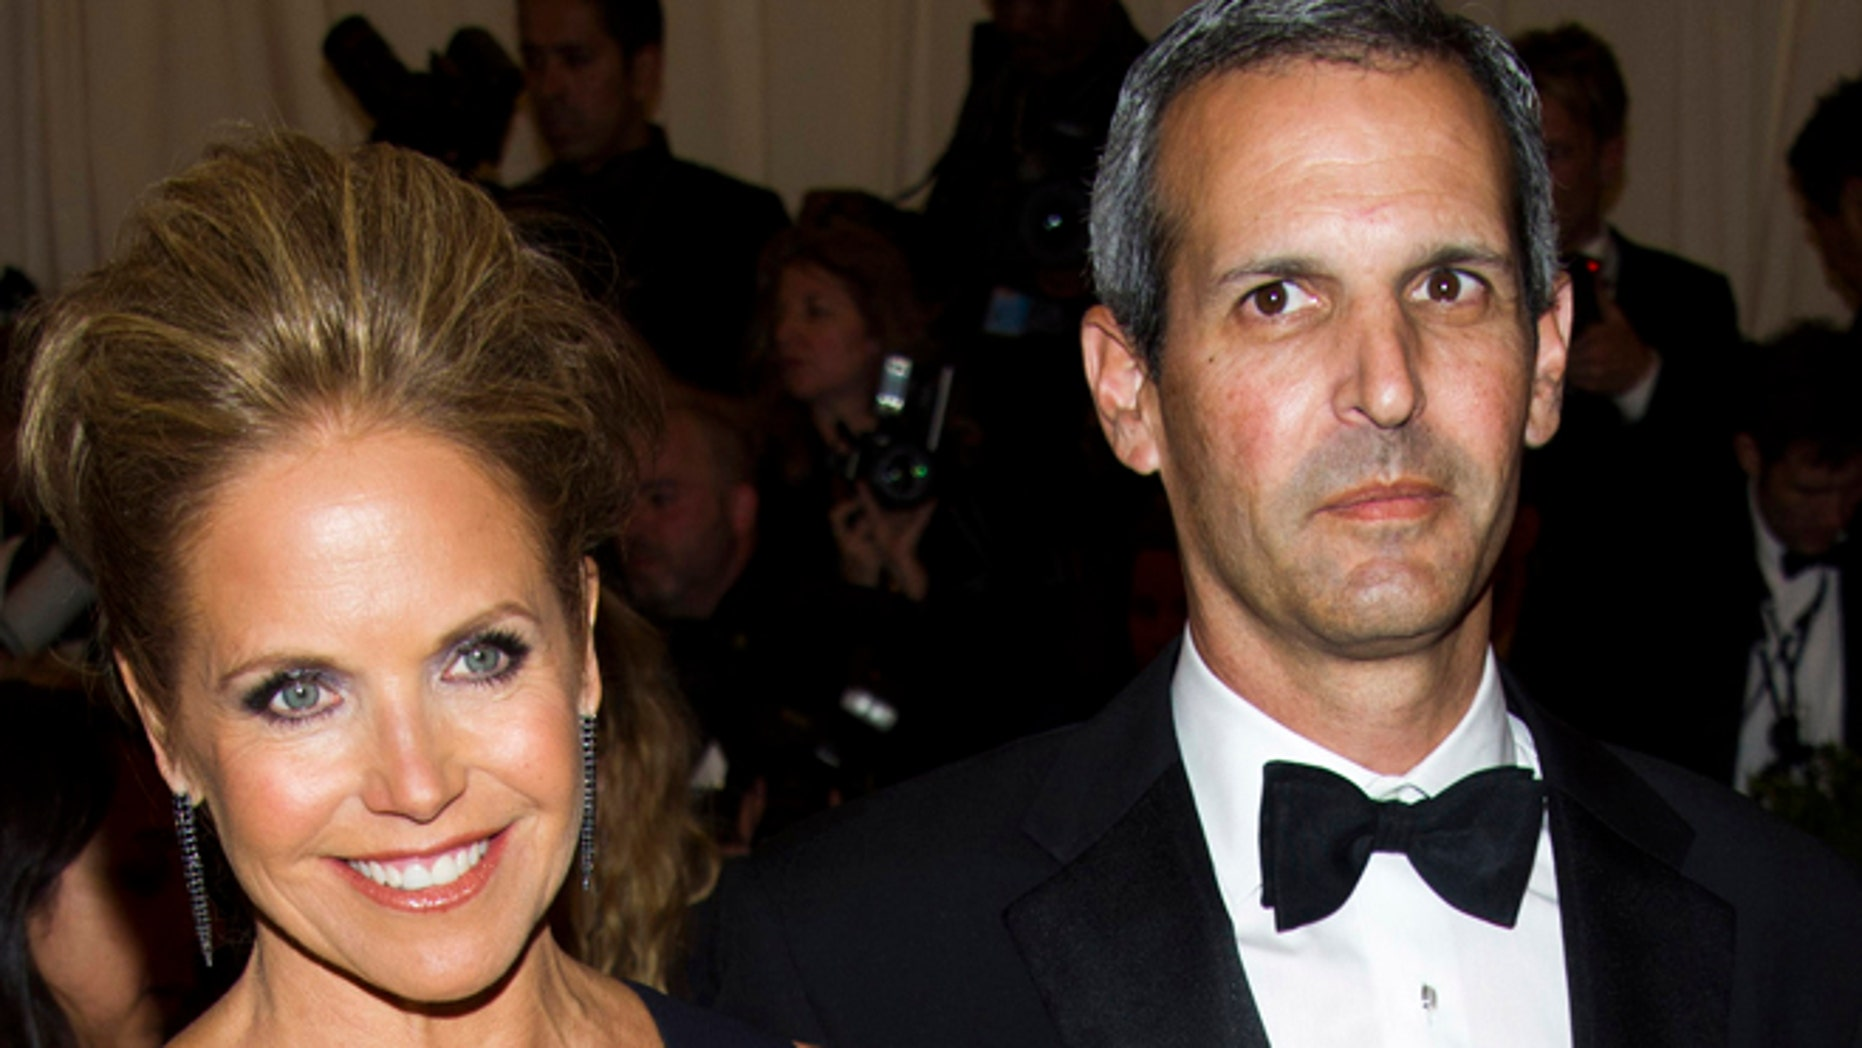 """May 6, 2013: In this file photo, TV personality Katie Couric, left, and John Molner attend The Metropolitan Museum of Art's Costume Institute benefit celebrating """"PUNK: Chaos to Couture"""" in New York. Couric has married Molner in a small ceremony at her East Hampton home."""